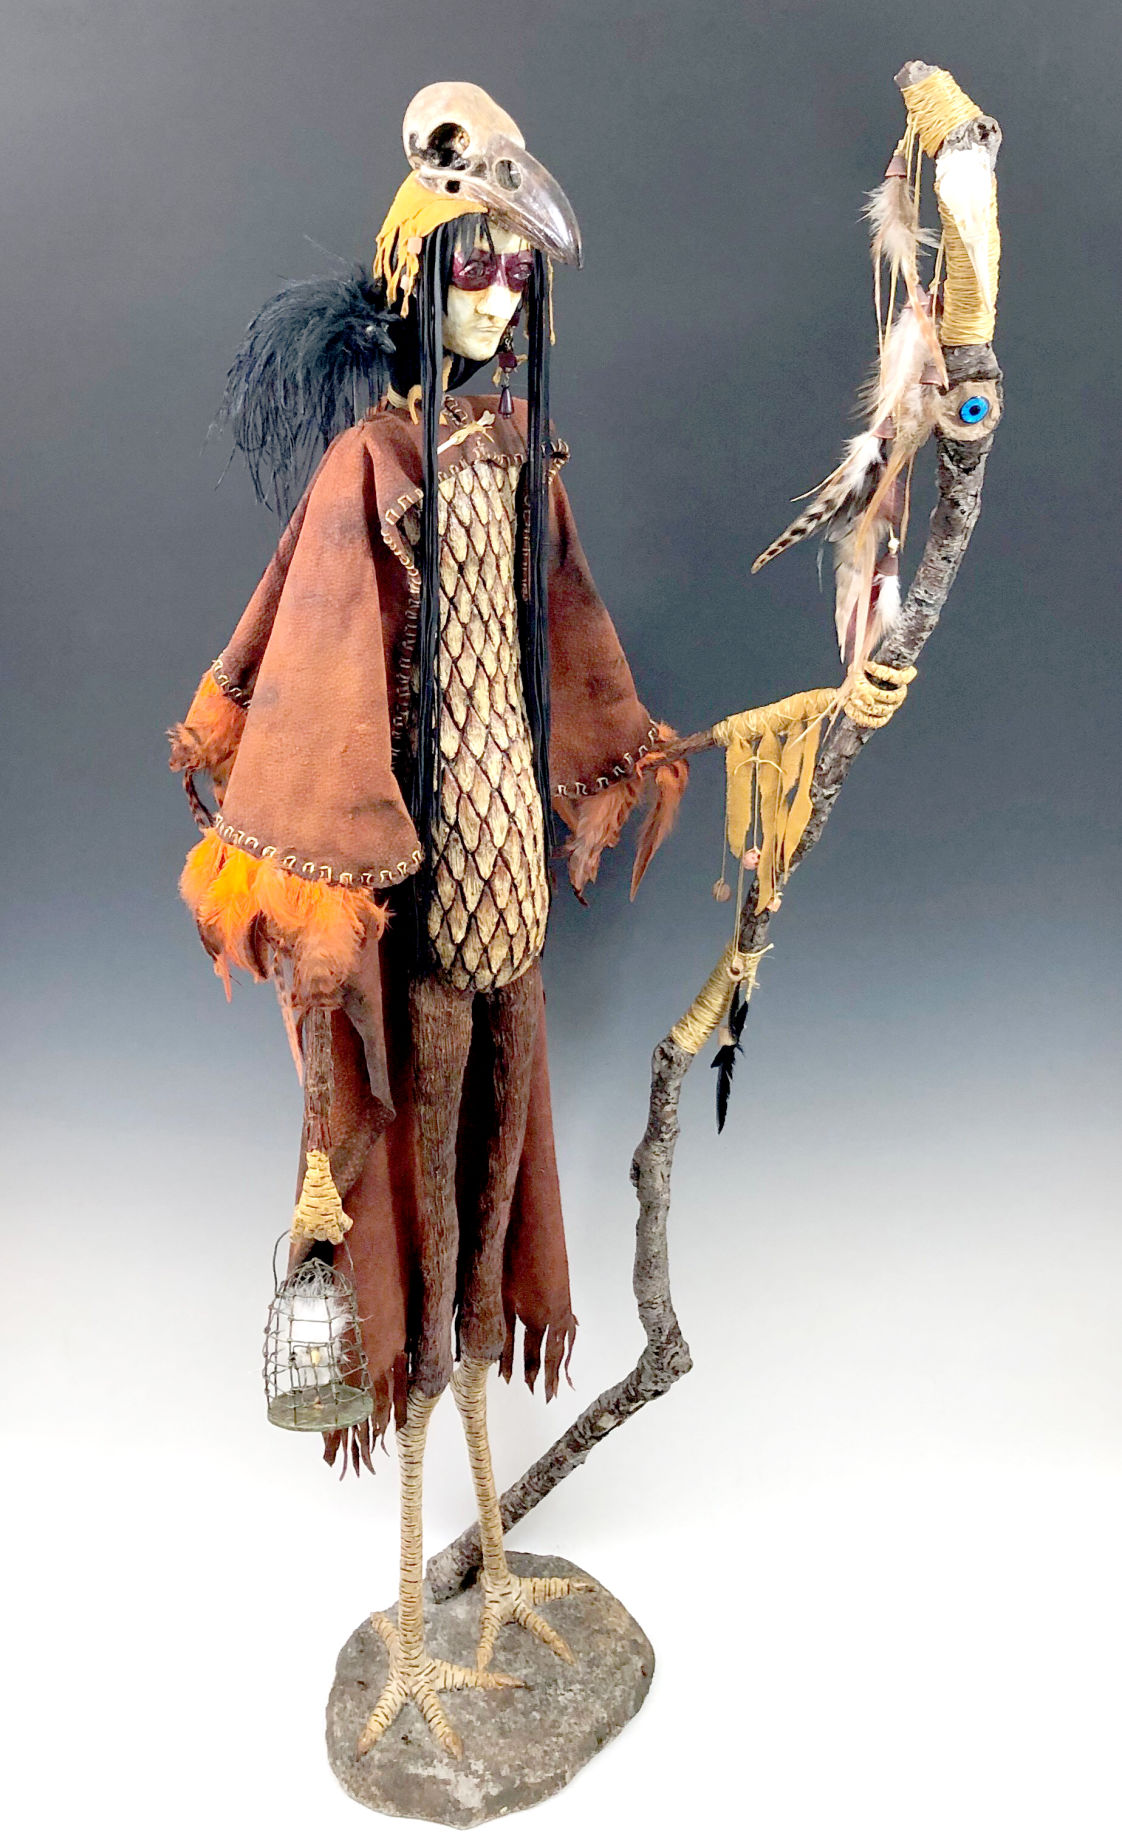 190301_oct_tag_Creature with stick, sculpture-assemblge, Janet Runger.jpg